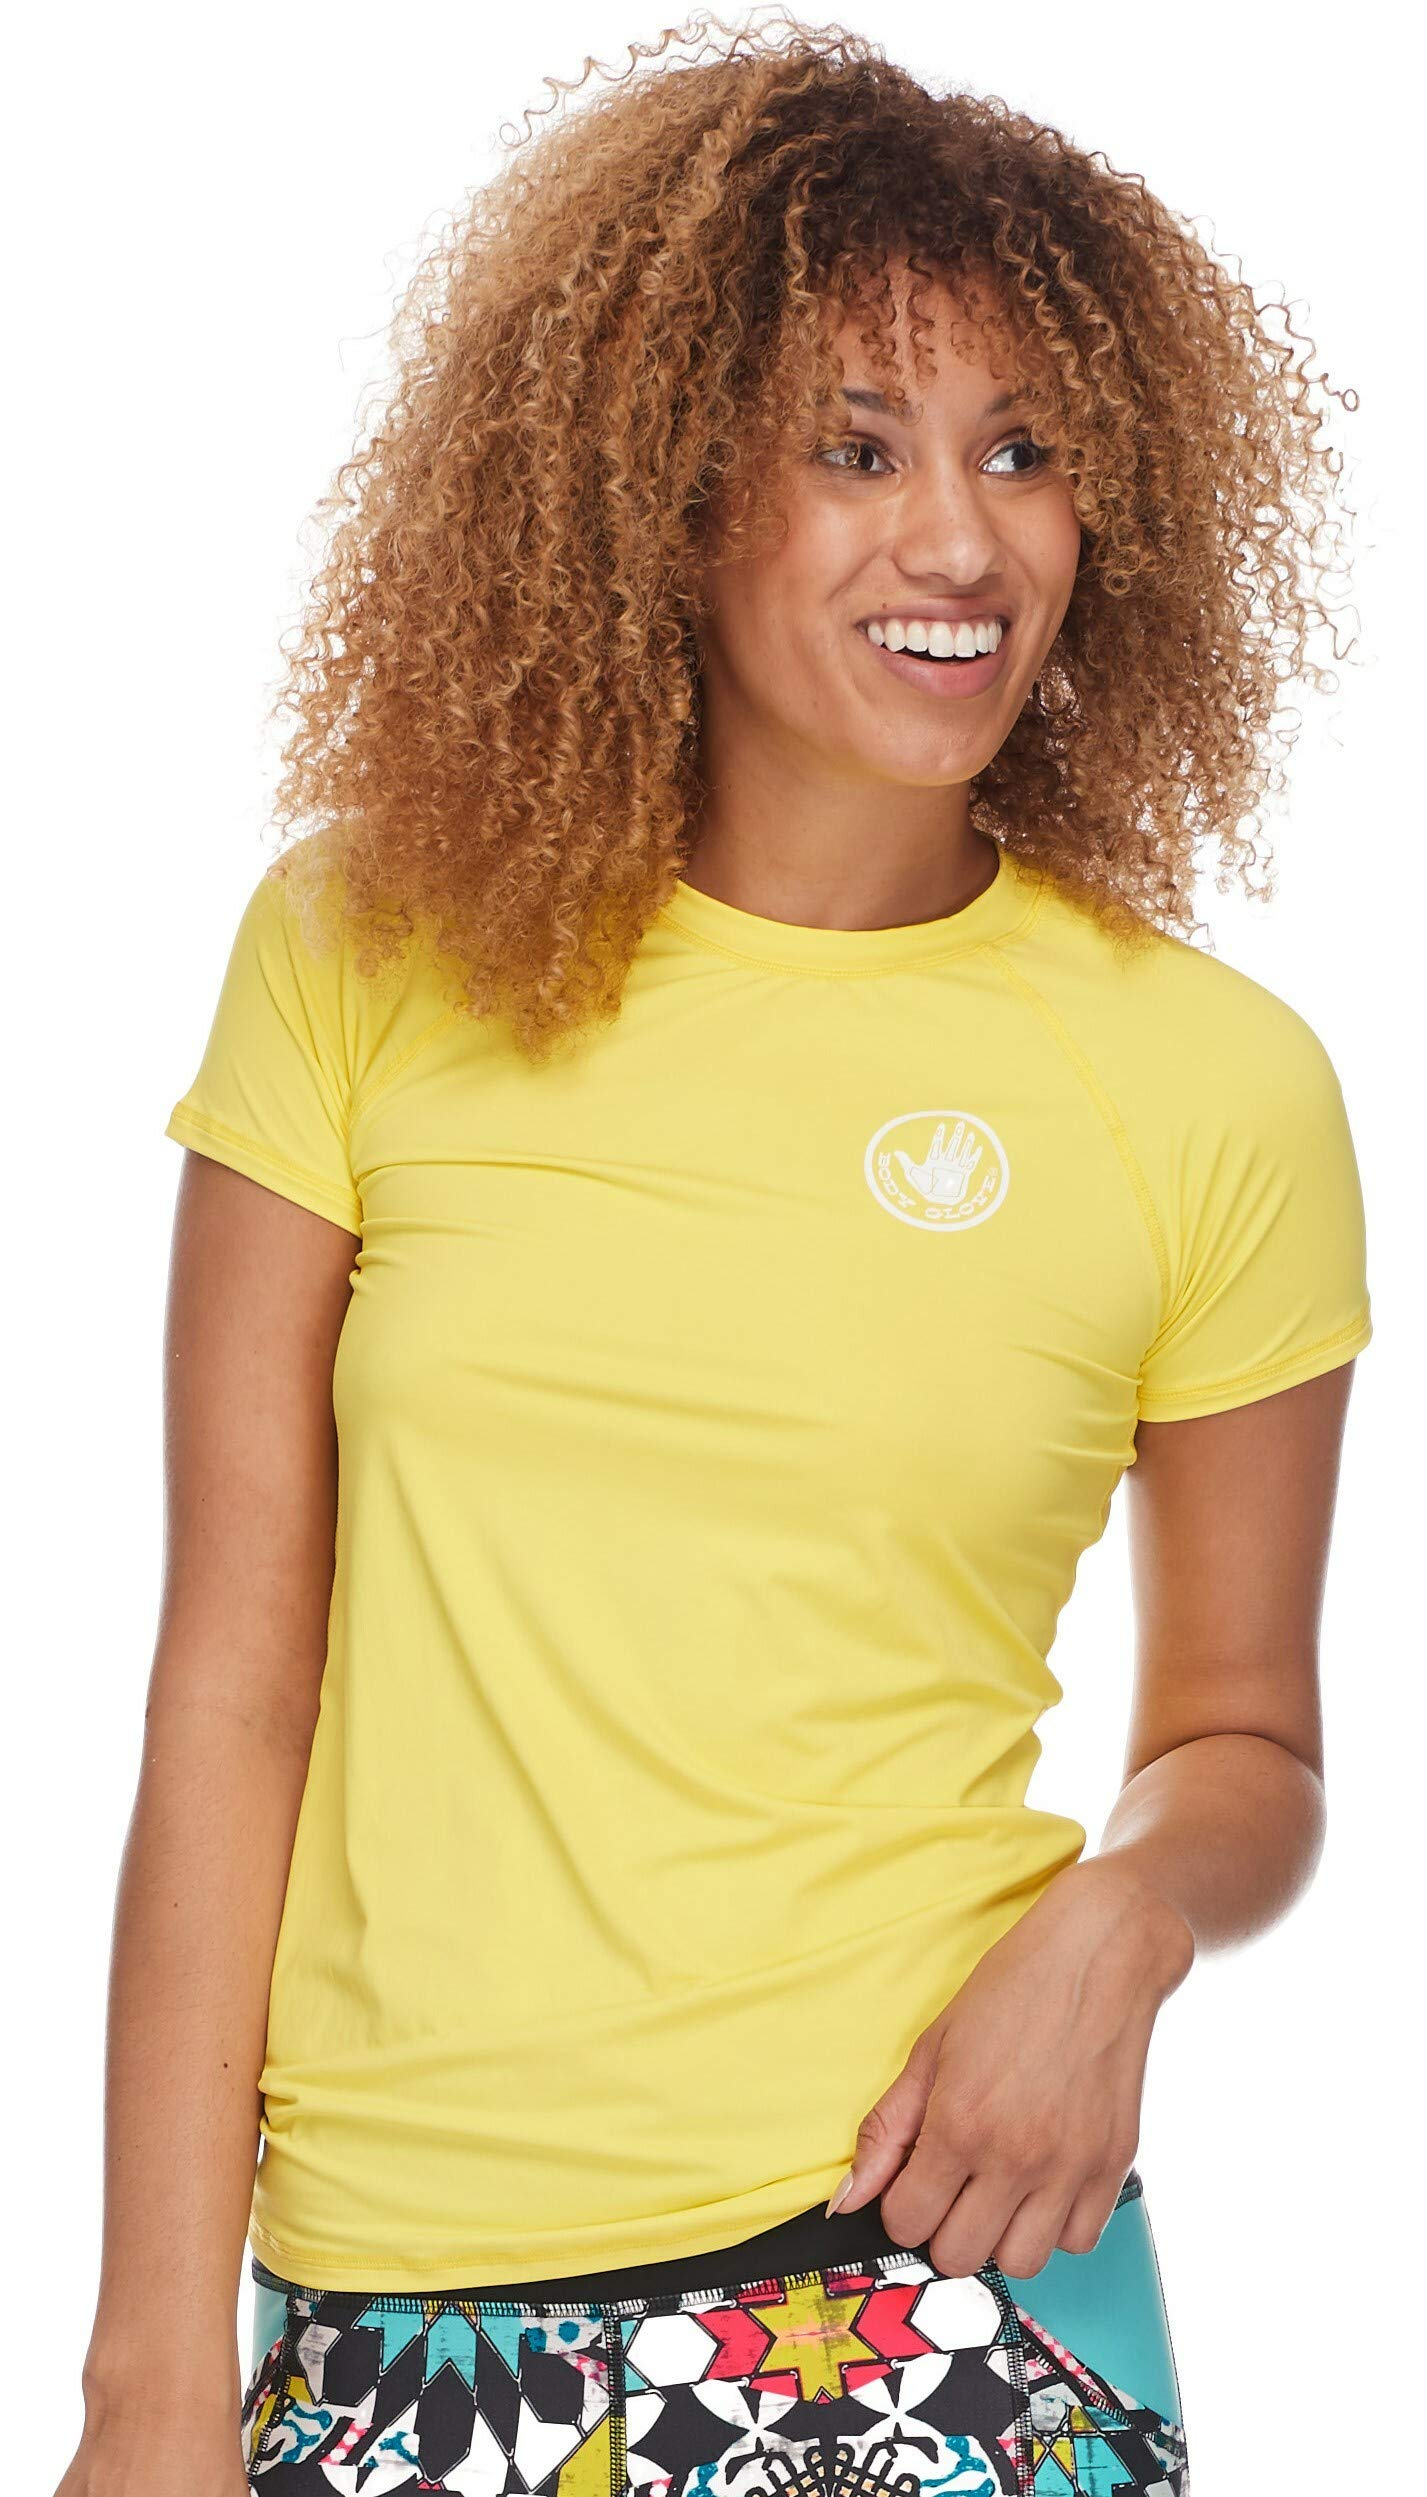 Body Glove Women's Smoothies in-Motion Solid Short Sleeve Rashguard with UPF 50 Citrus, X-Small by Body Glove (Image #1)